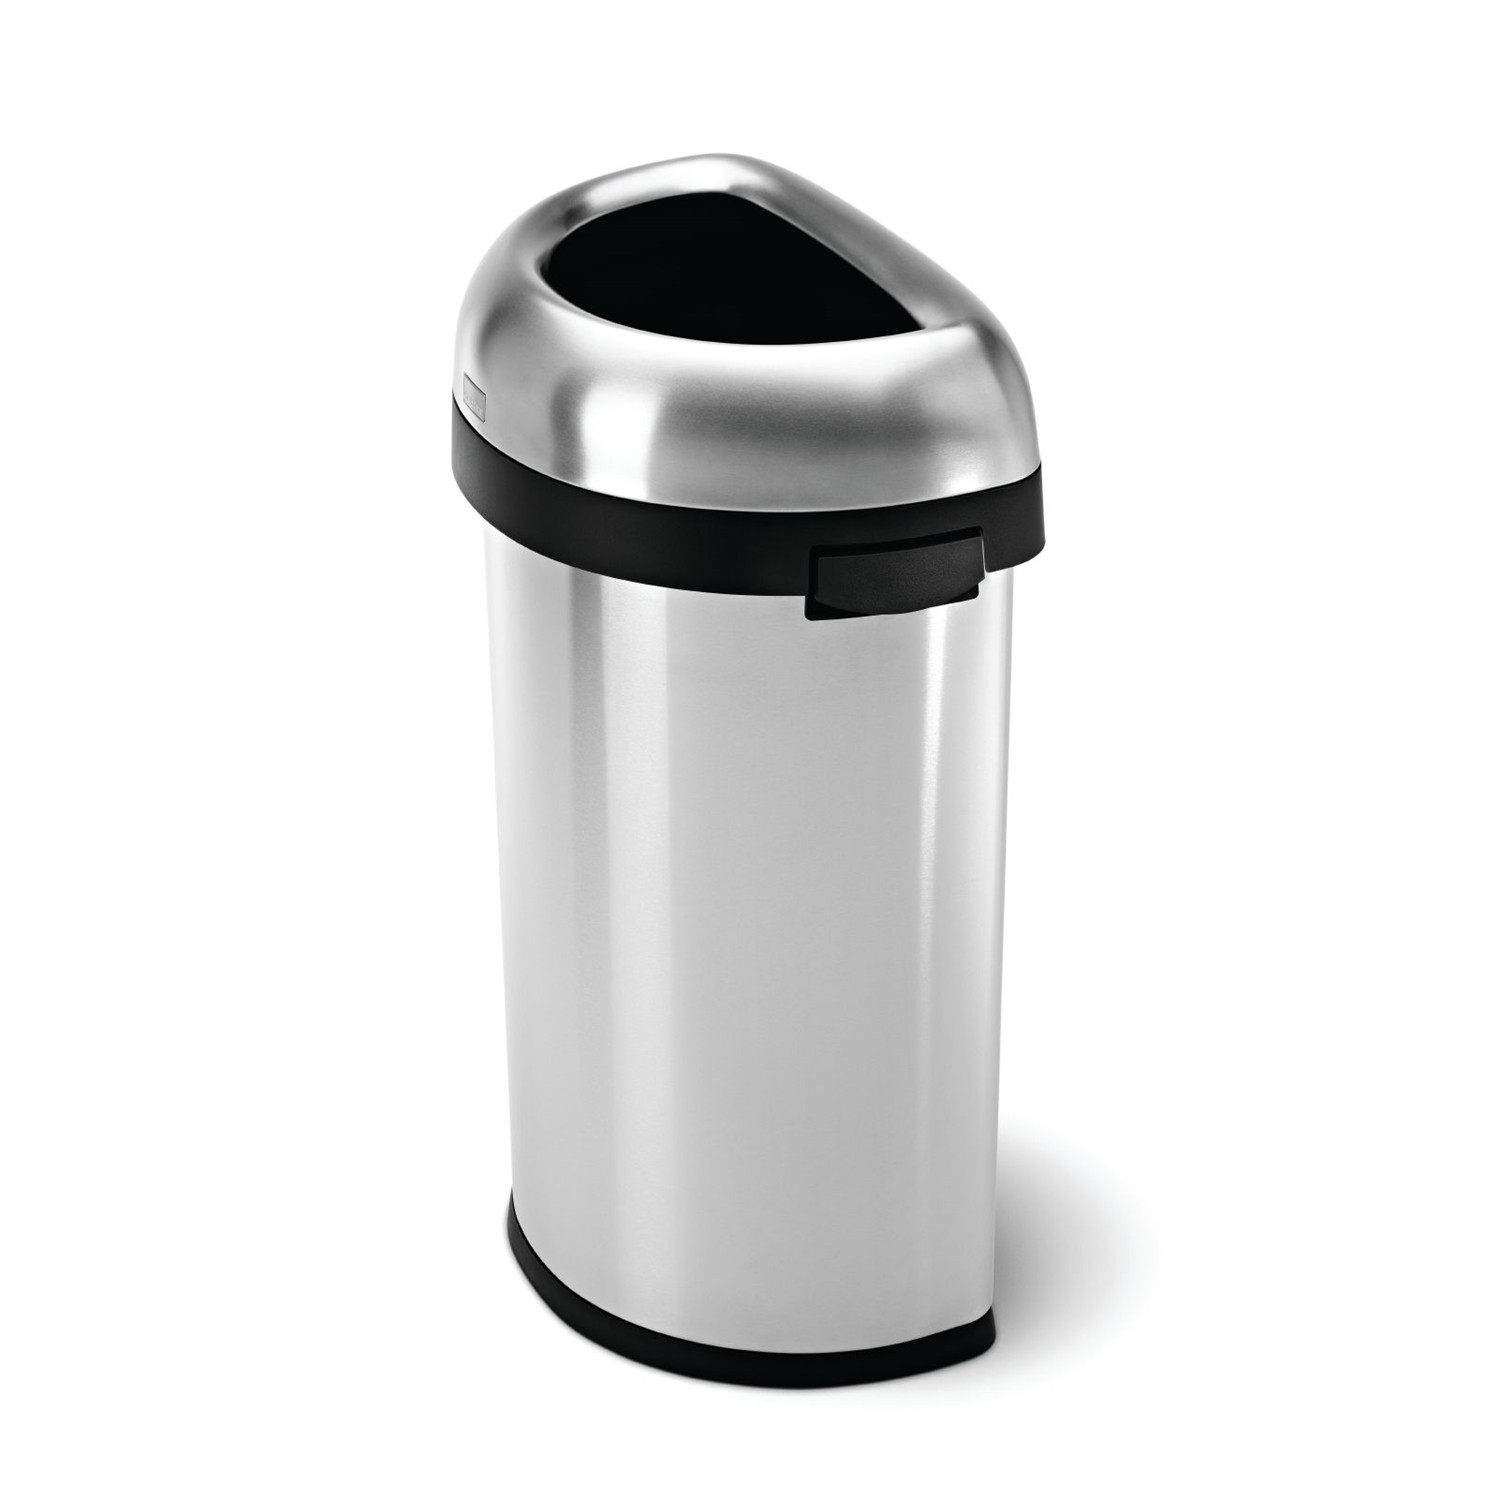 Simplehuman Semi Round Open Bin 60l Brushed Stainless Stee